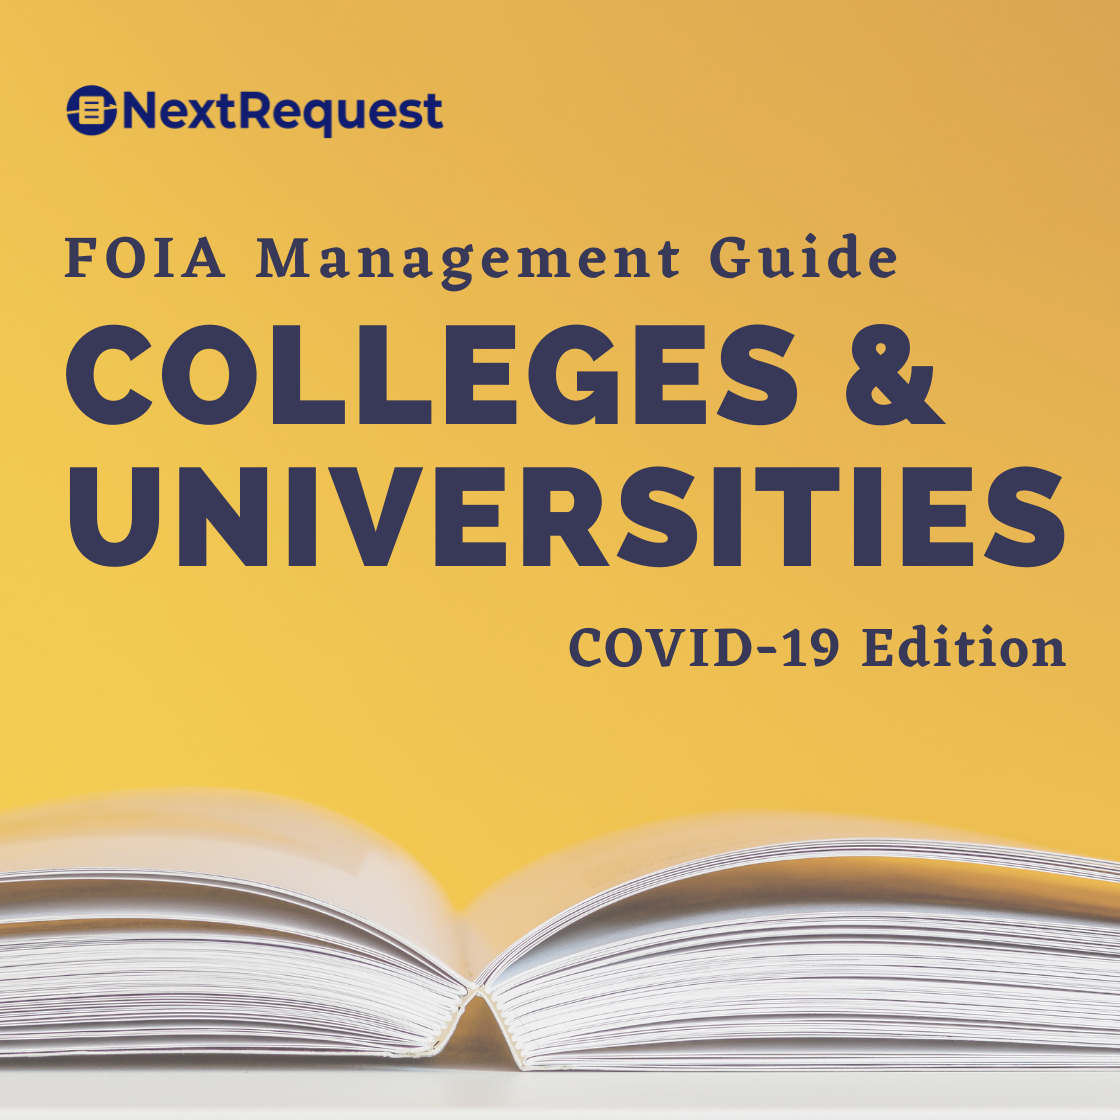 FOIA Management Guide for Colleges & Universities: COVID-19 Edition